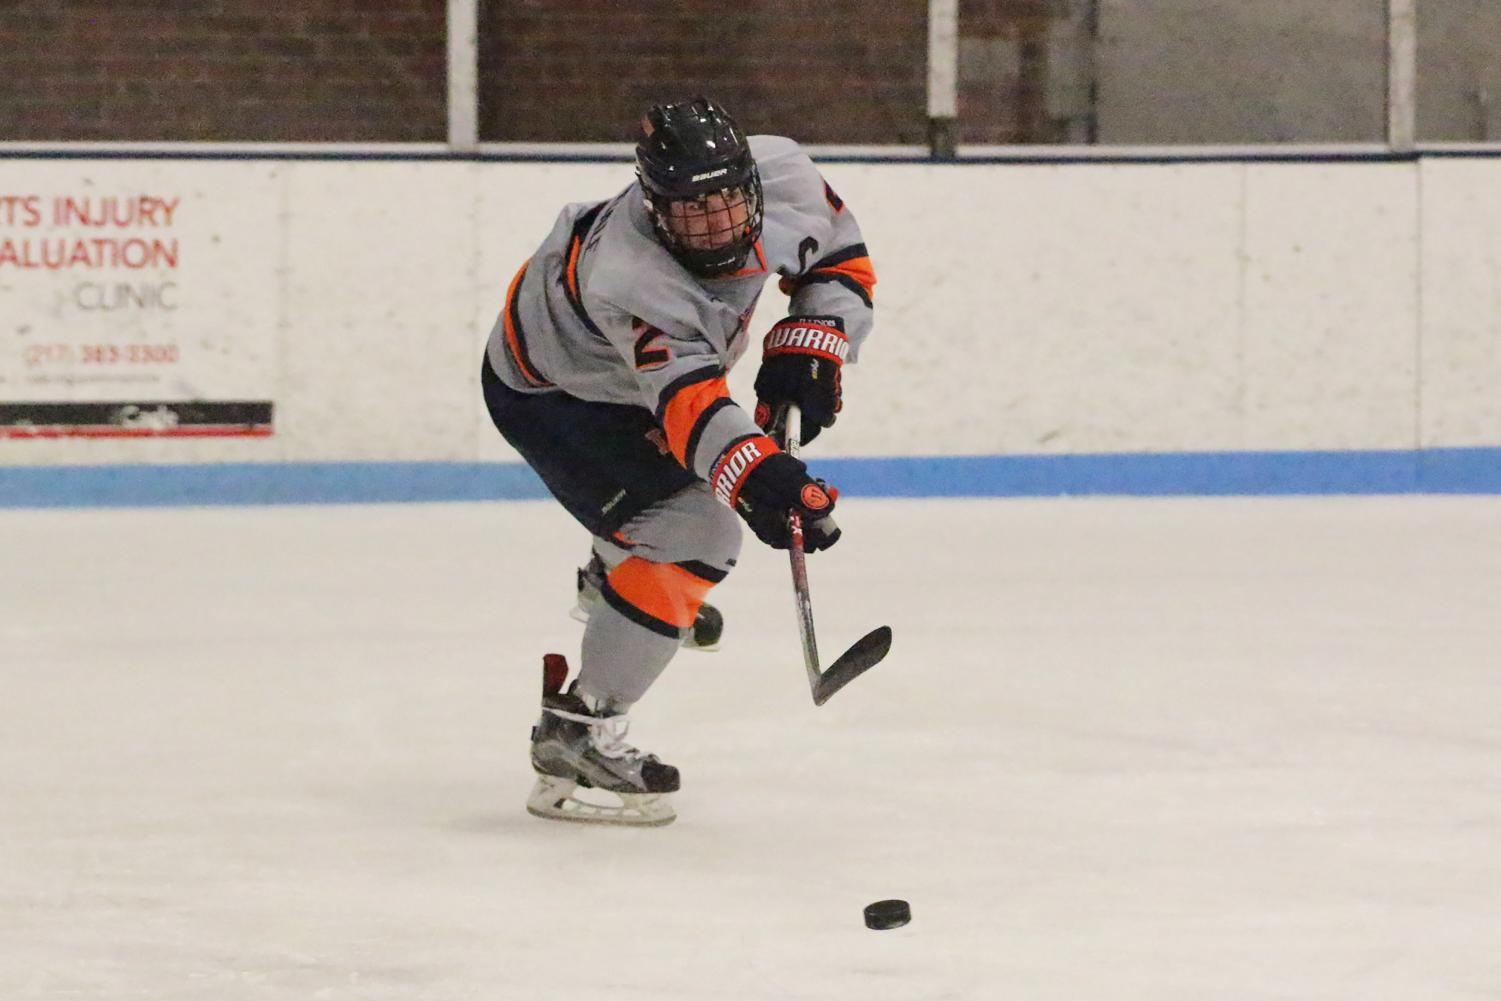 Joey Ritondale (2) passes the puck across the ice to a teammate at the Ice Arena on Friday, Feb. 10. Illini beat Ohio 5-4.